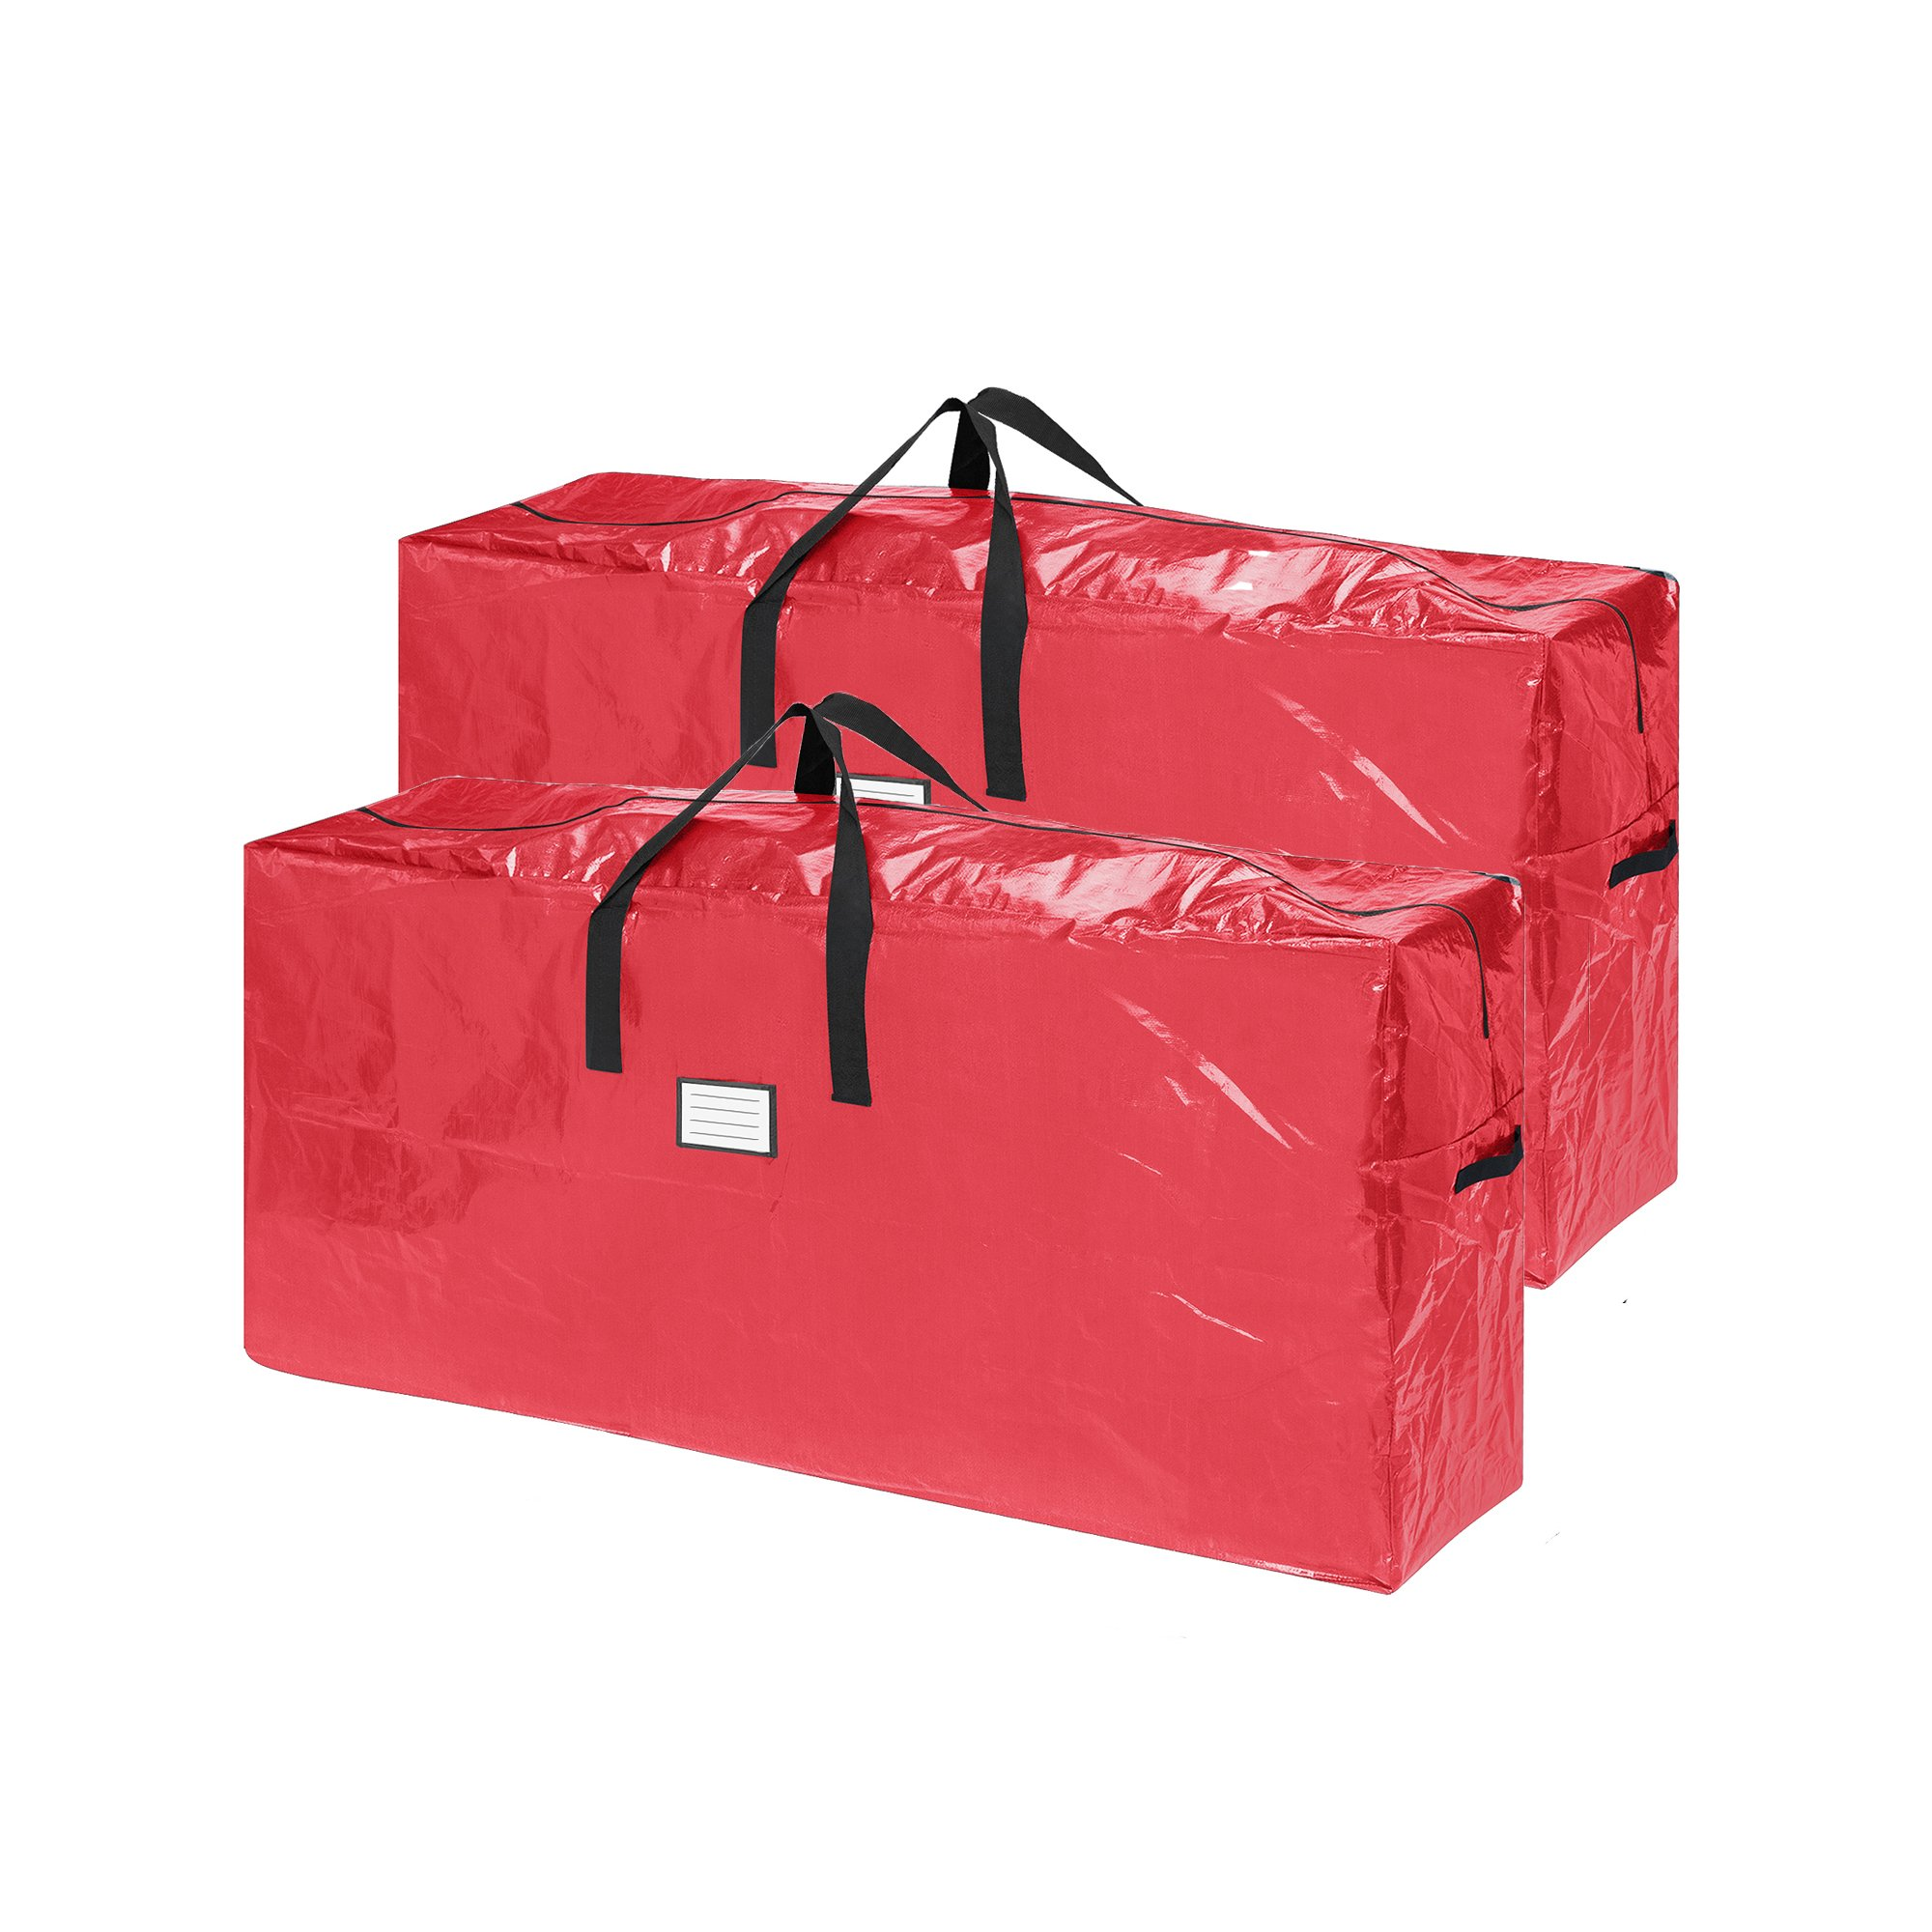 Elf Stor 83-DT5517 2-Pack   Christmas Bag   Extra Large for up to 9 Ft Tree   Red